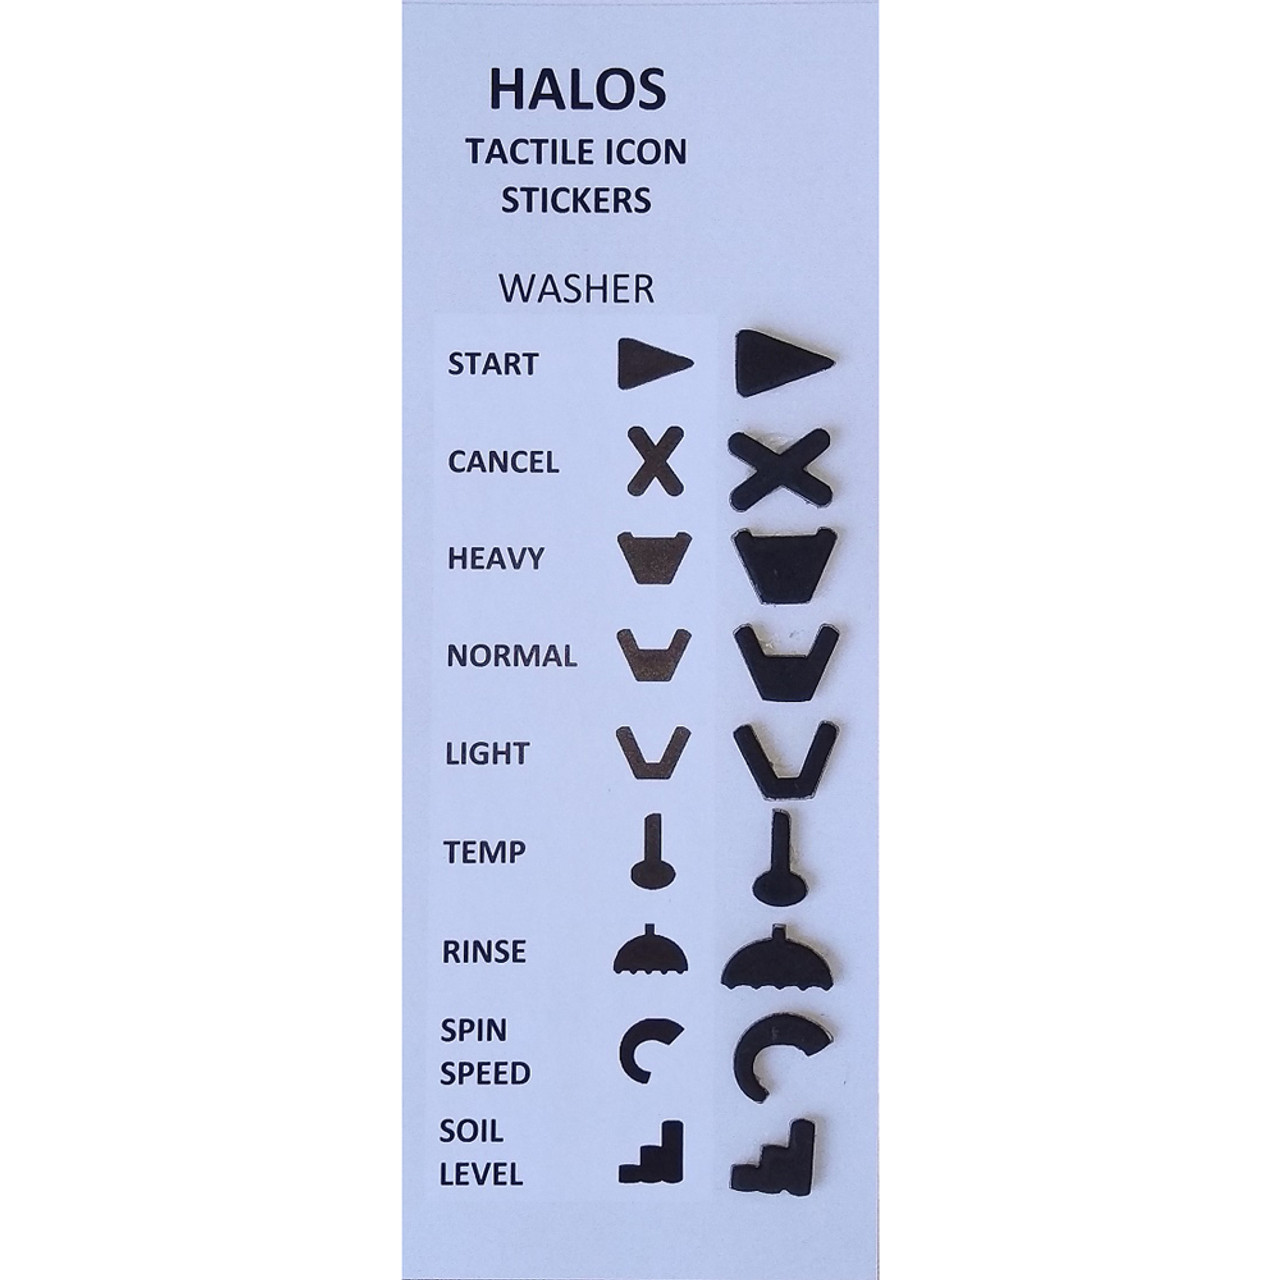 HALOS Tactile Washer Stickers - 2 sets per pack